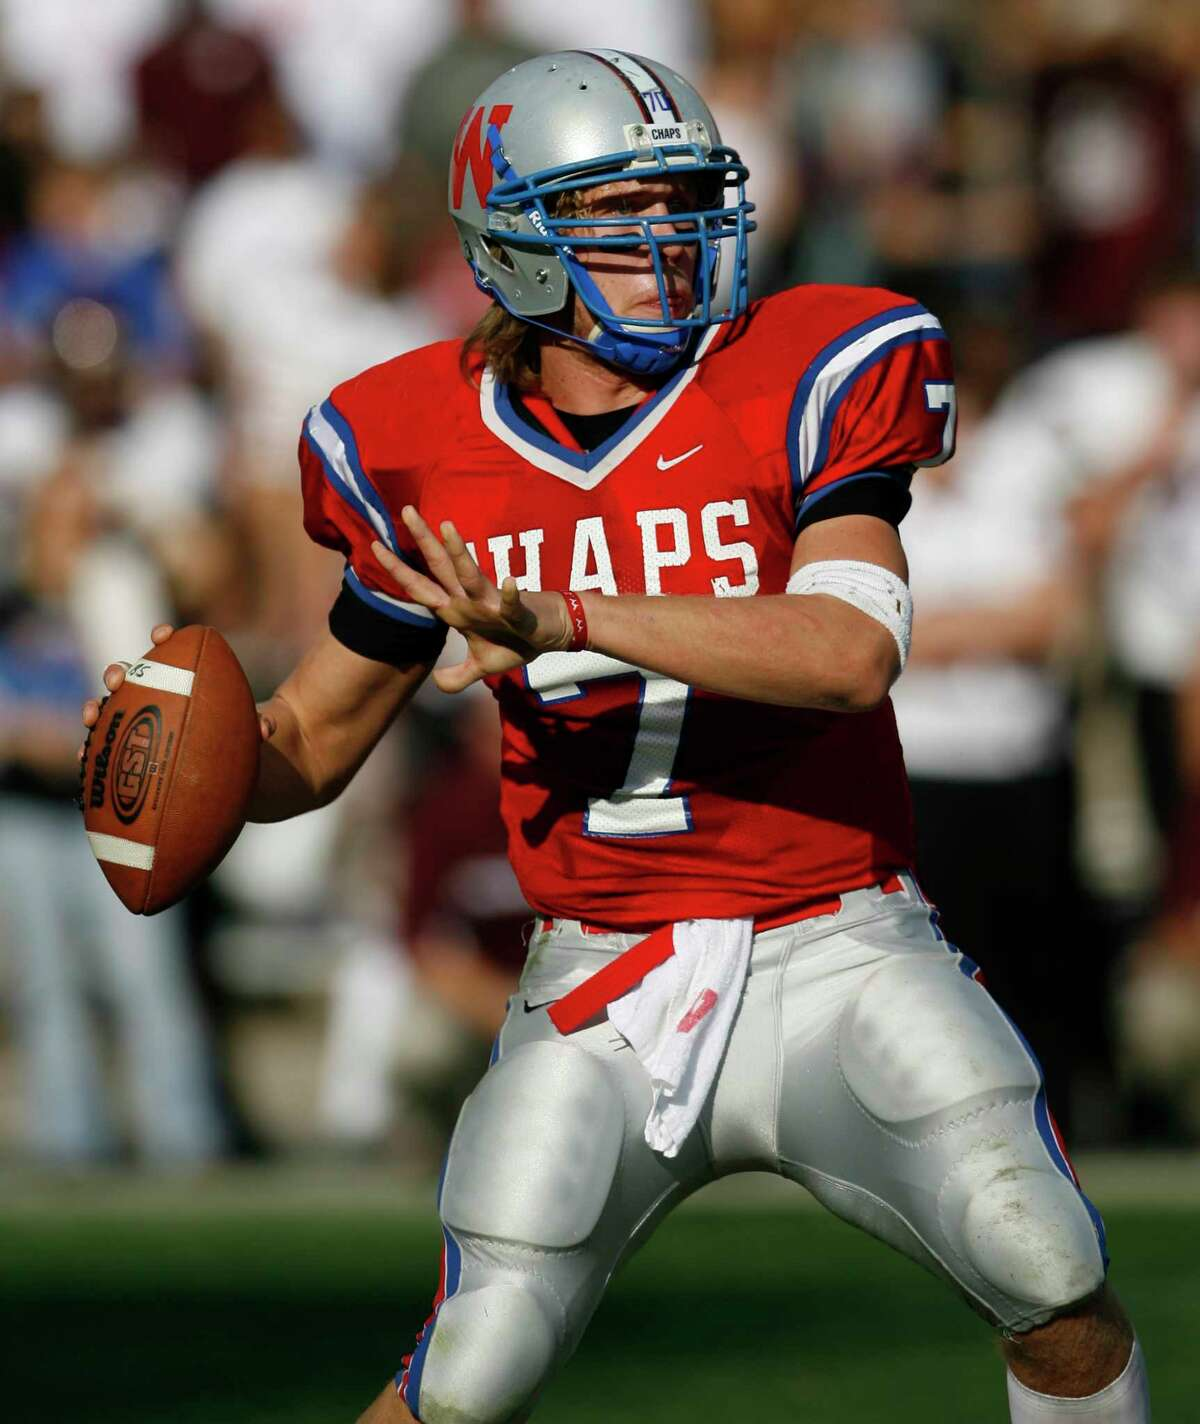 Westlake High School senior quarterback Nick Foles (7) looks to pass downfield in the first half of the Pearland High School vs. Westlake High School Class 5A Division I State Semifinals football game at Kyle Field on Saturday December 16, 2006 in College Station, Texas. Westlake High School won 35-32 to advance to the state championship game next weekend in San Antonio, Texas.